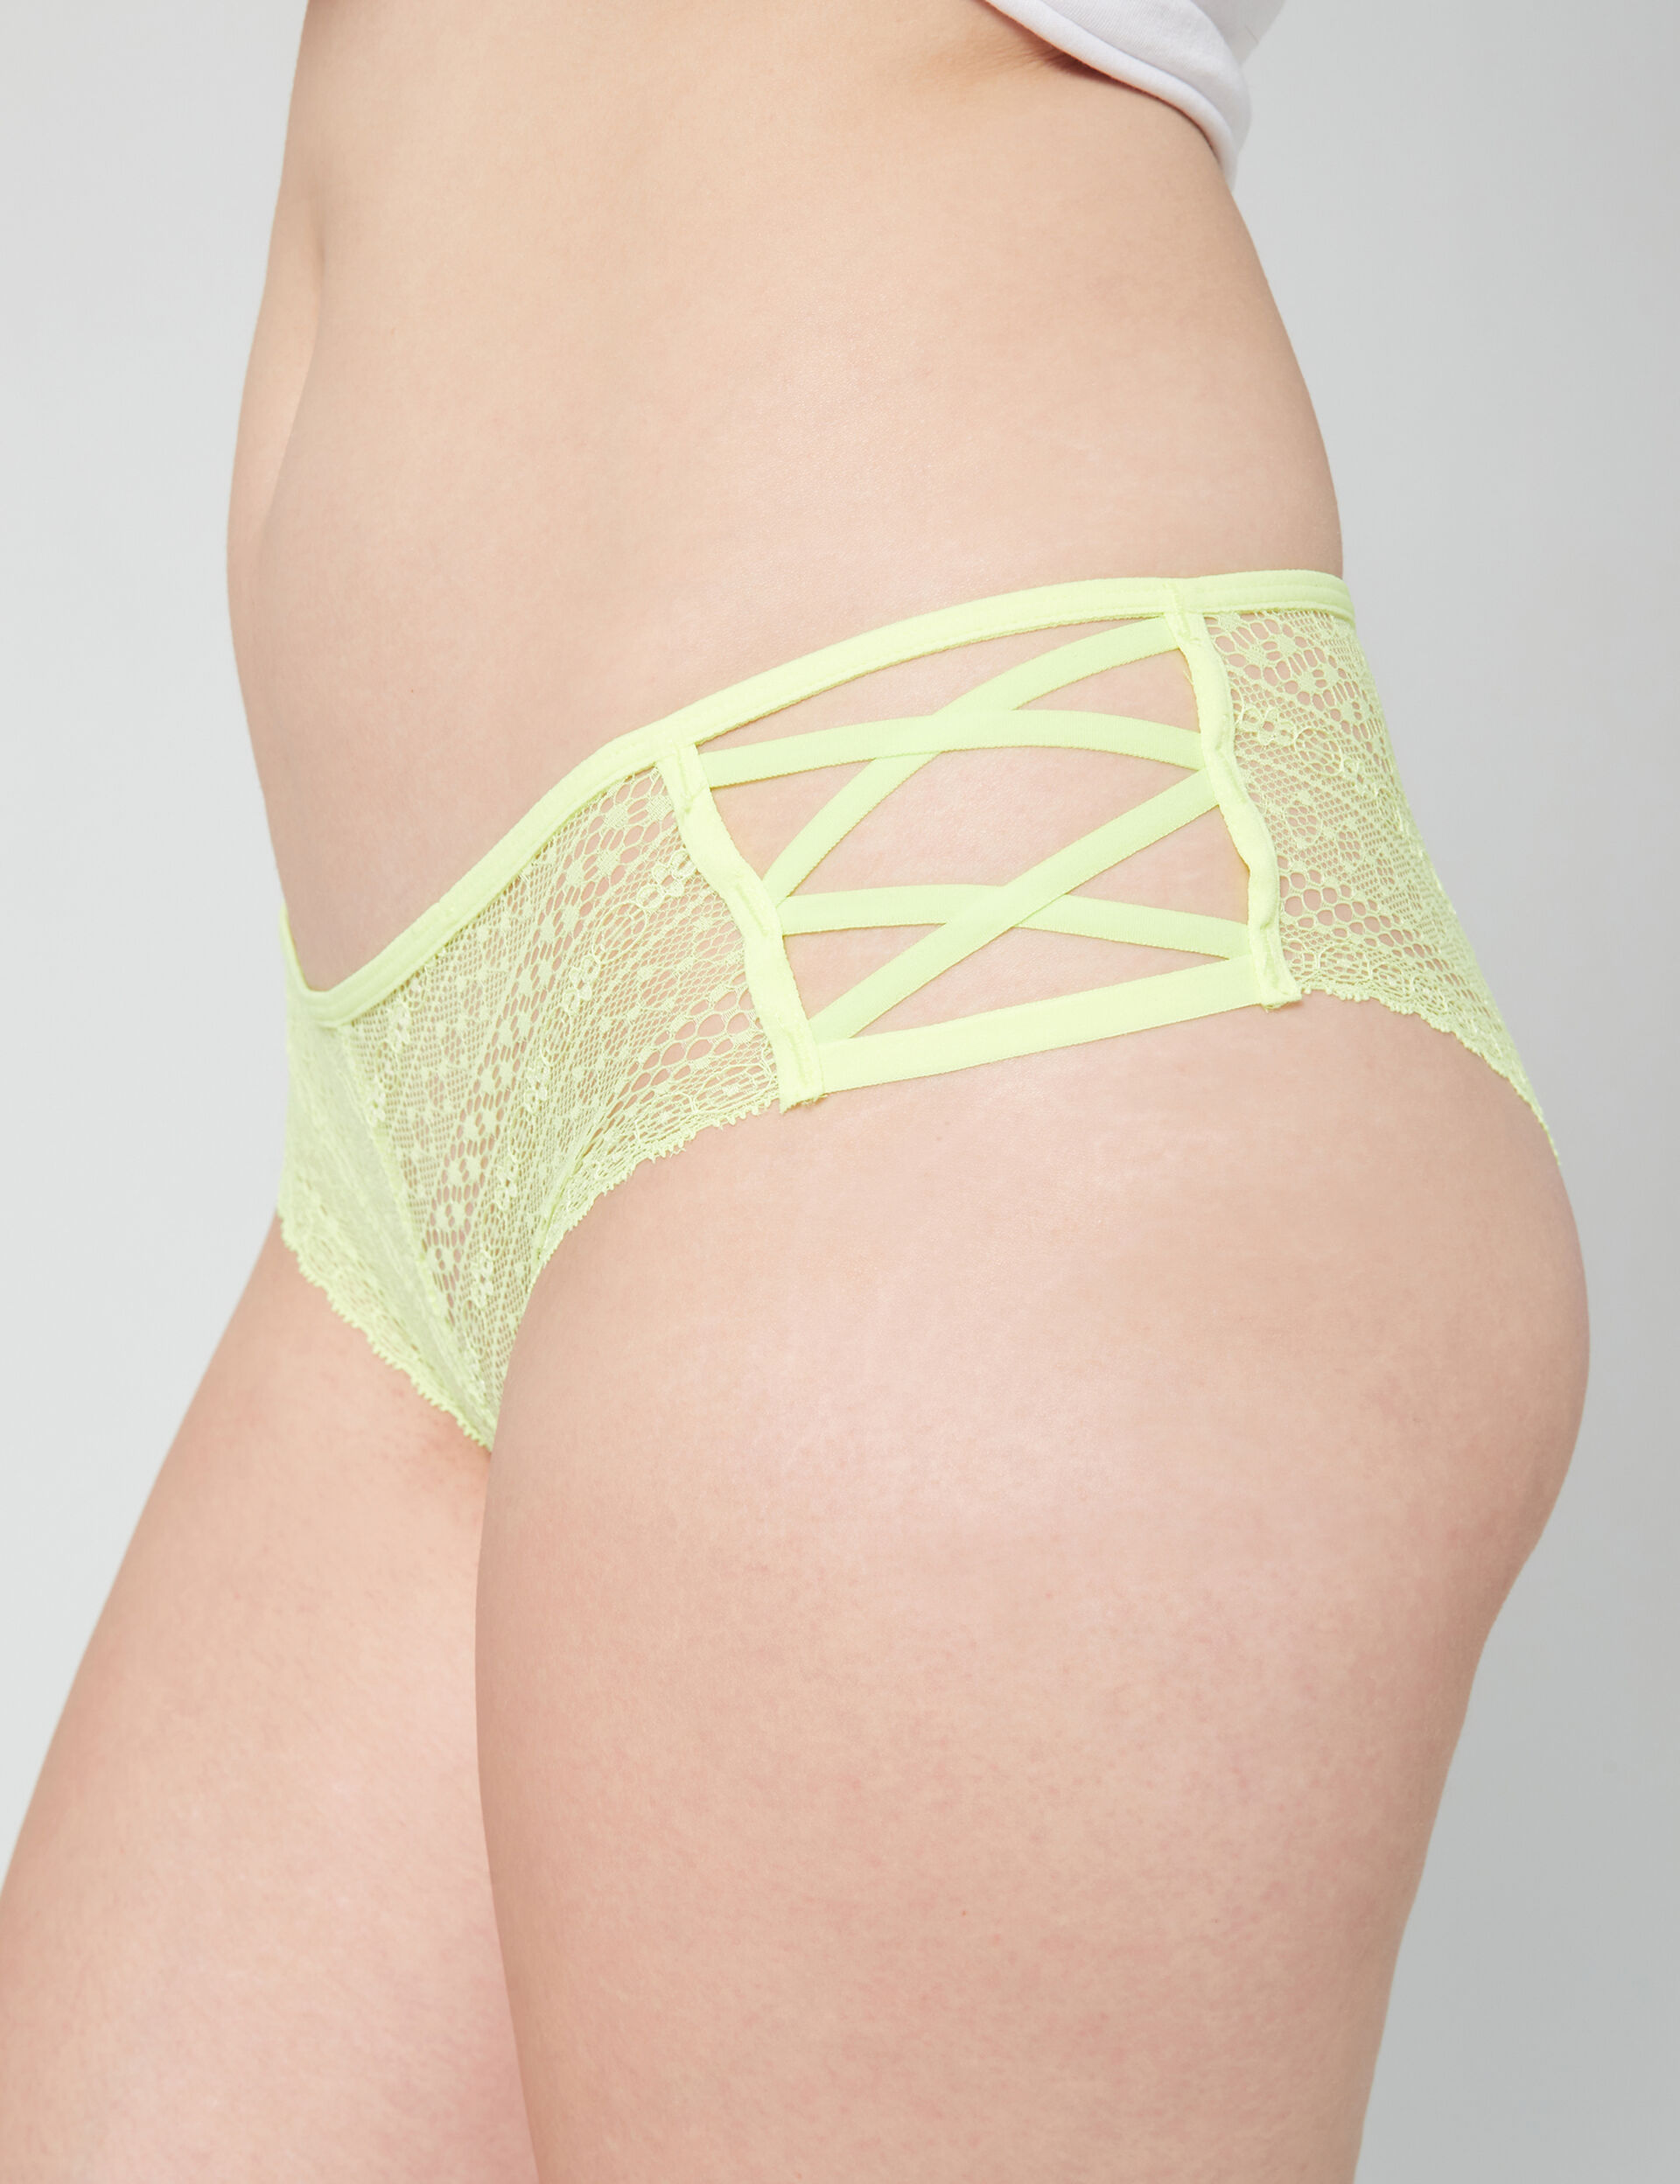 Lace boyshorts with strap detail